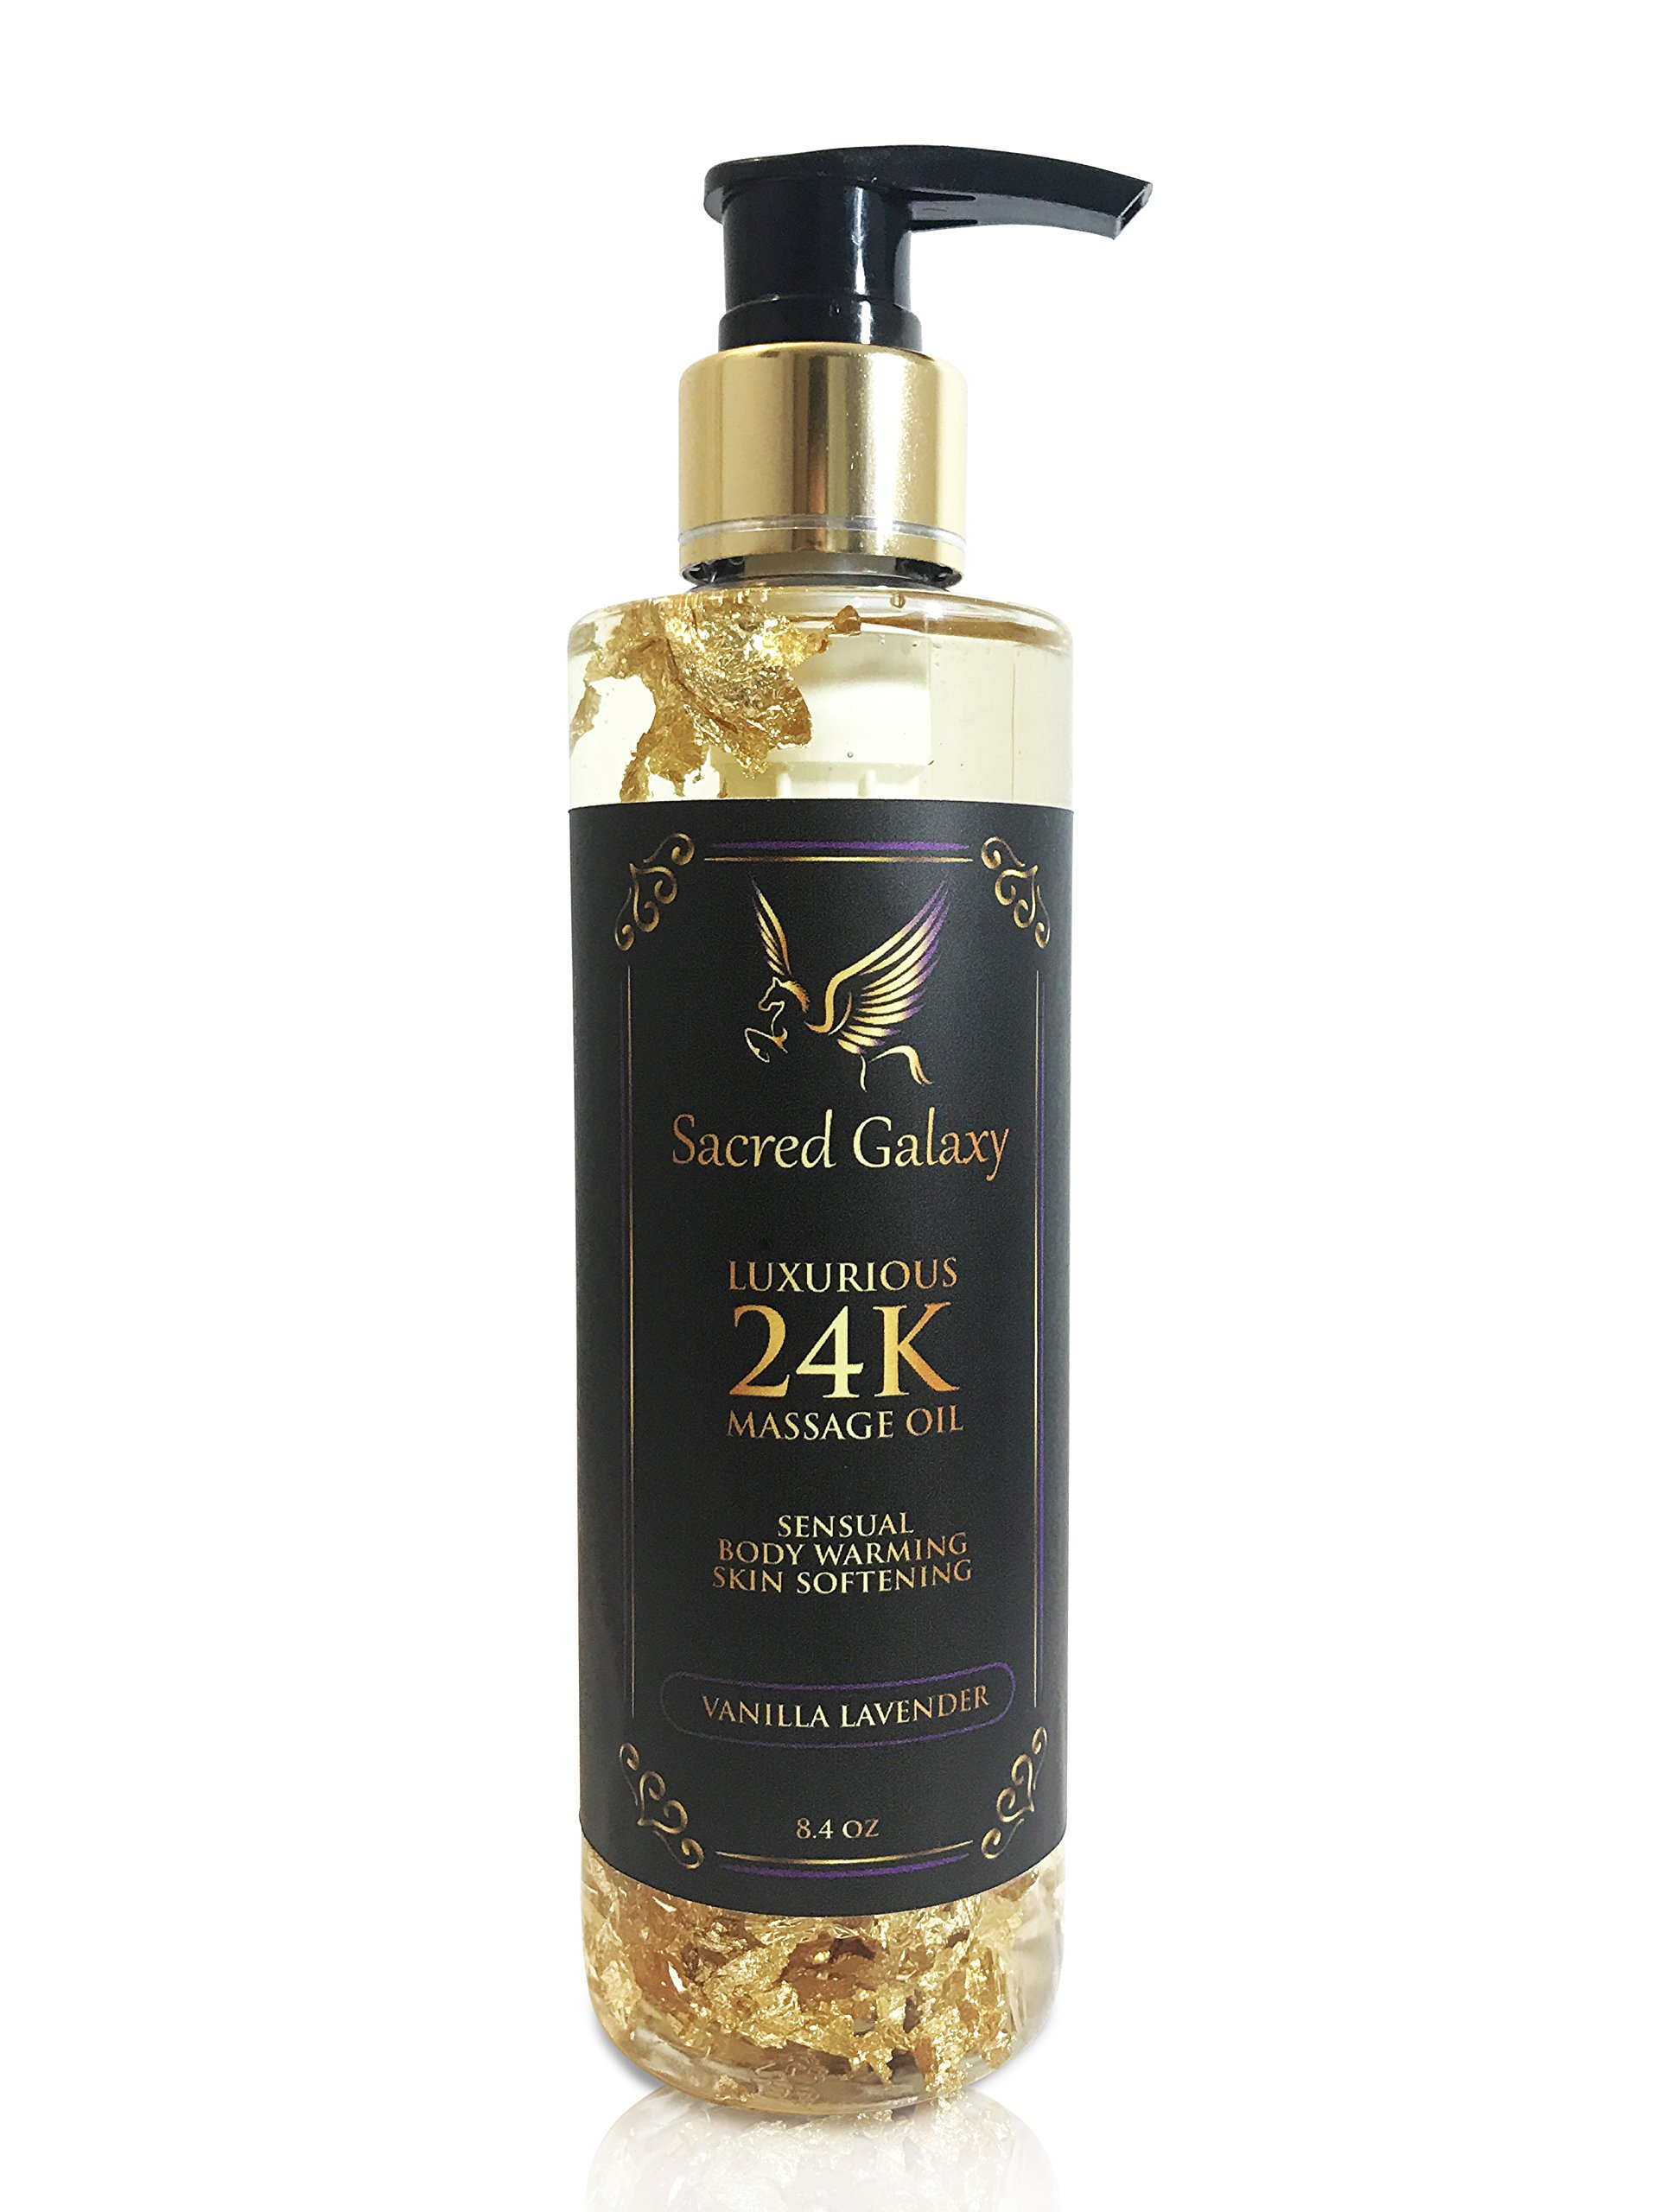 Massage Oil and Bath Oil for Couples with Luxury 24K Shimmer. Scented with Lavender and Vanilla. Made with Hemp Seed, Coconut and JoJoba